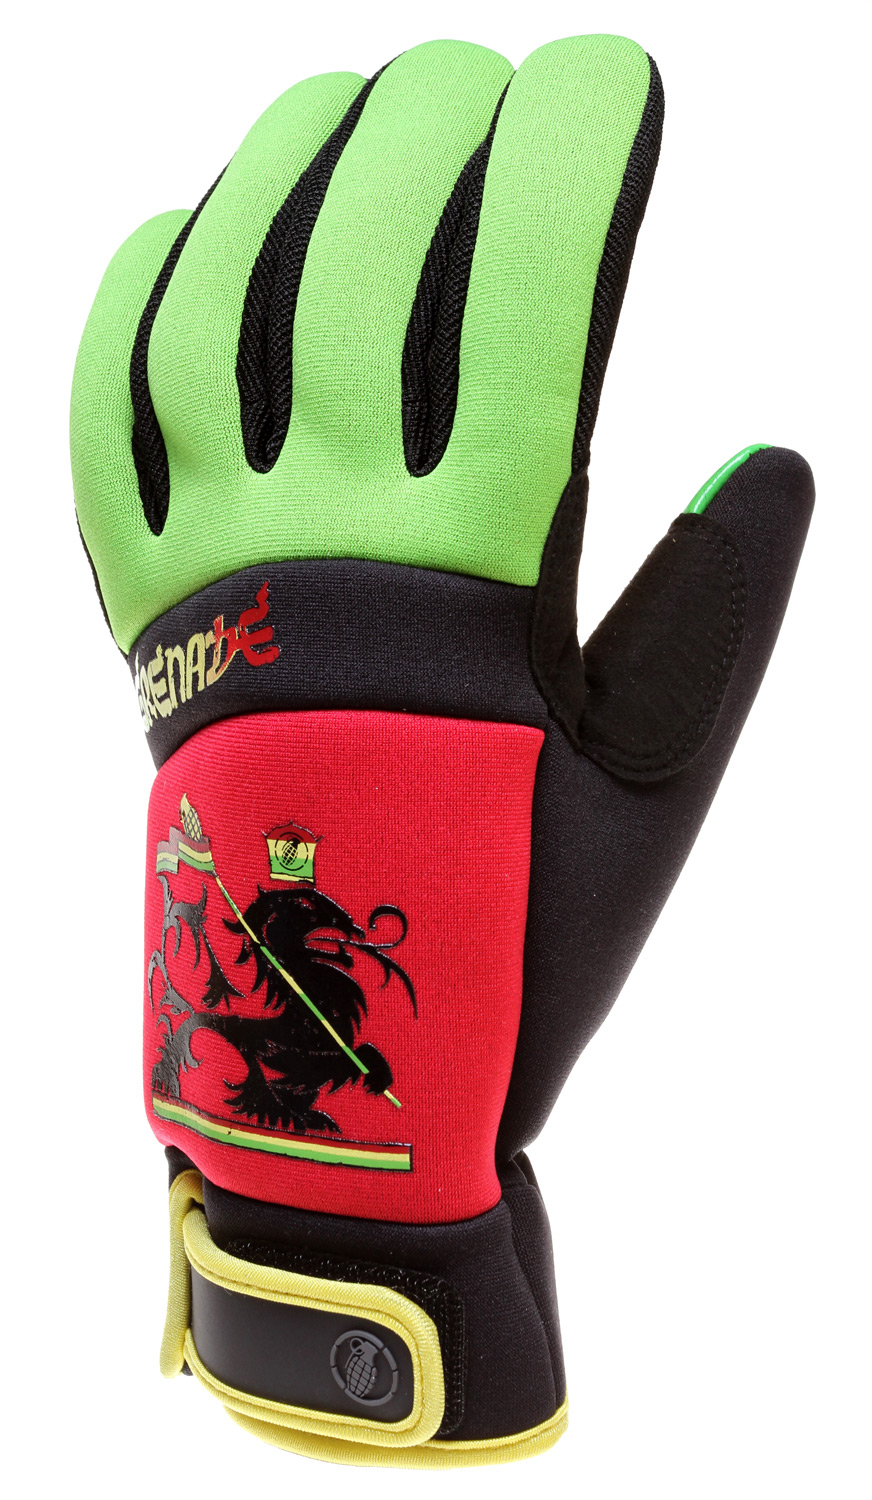 Grenade Bob Gnarly Ski Snowboard Gloves Red by Grenade